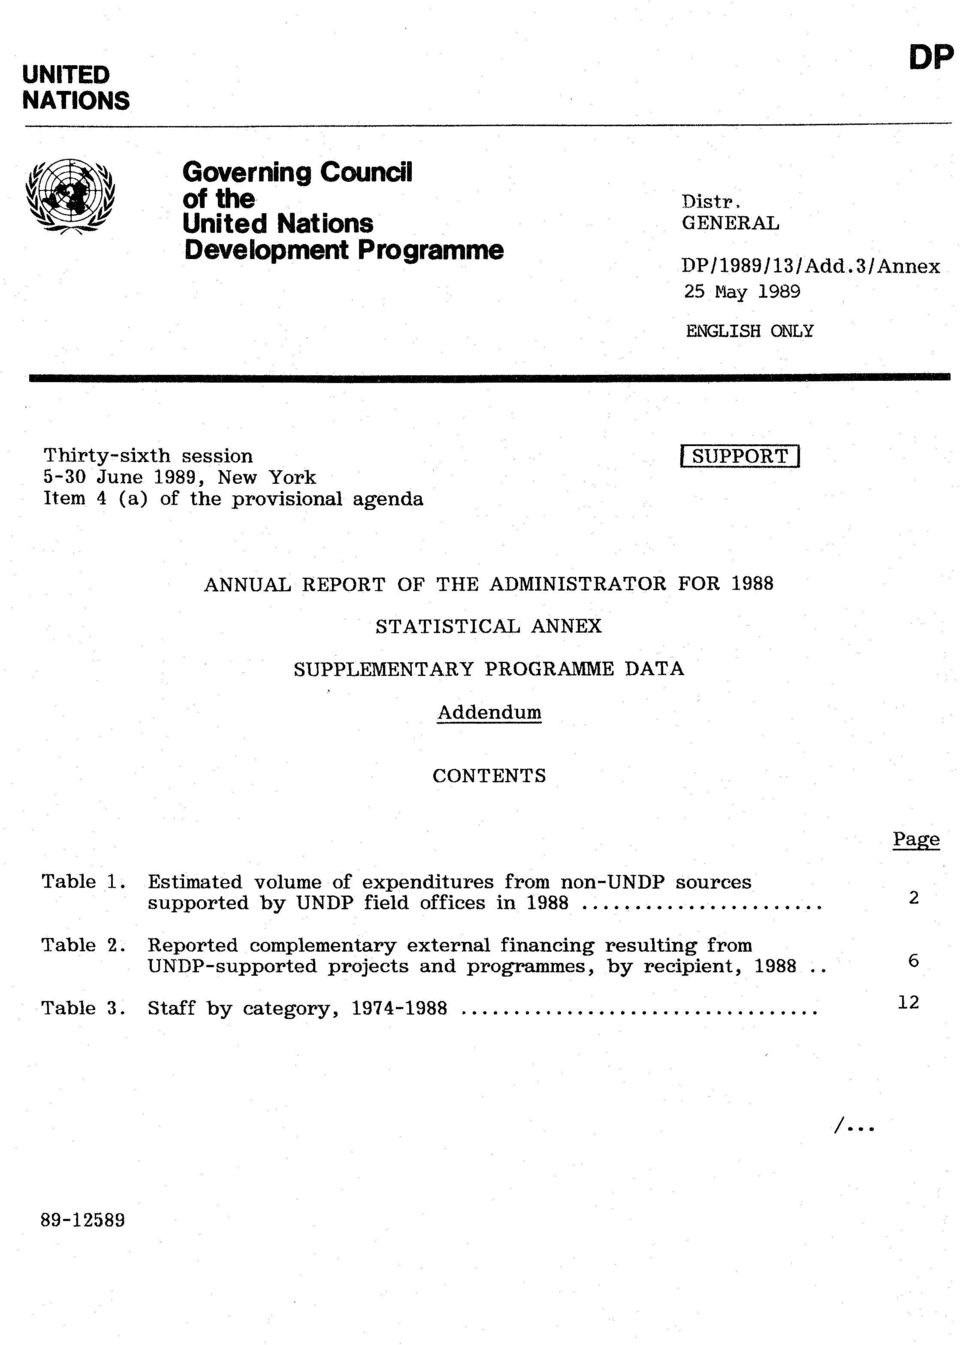 ADMINISTRATOR FOR 1988 STATISTICAL ANNEX SUPPLEMENTARY PROGRAMME DATA Addendum CONTENTS Table 1. Table 2. Table 3.